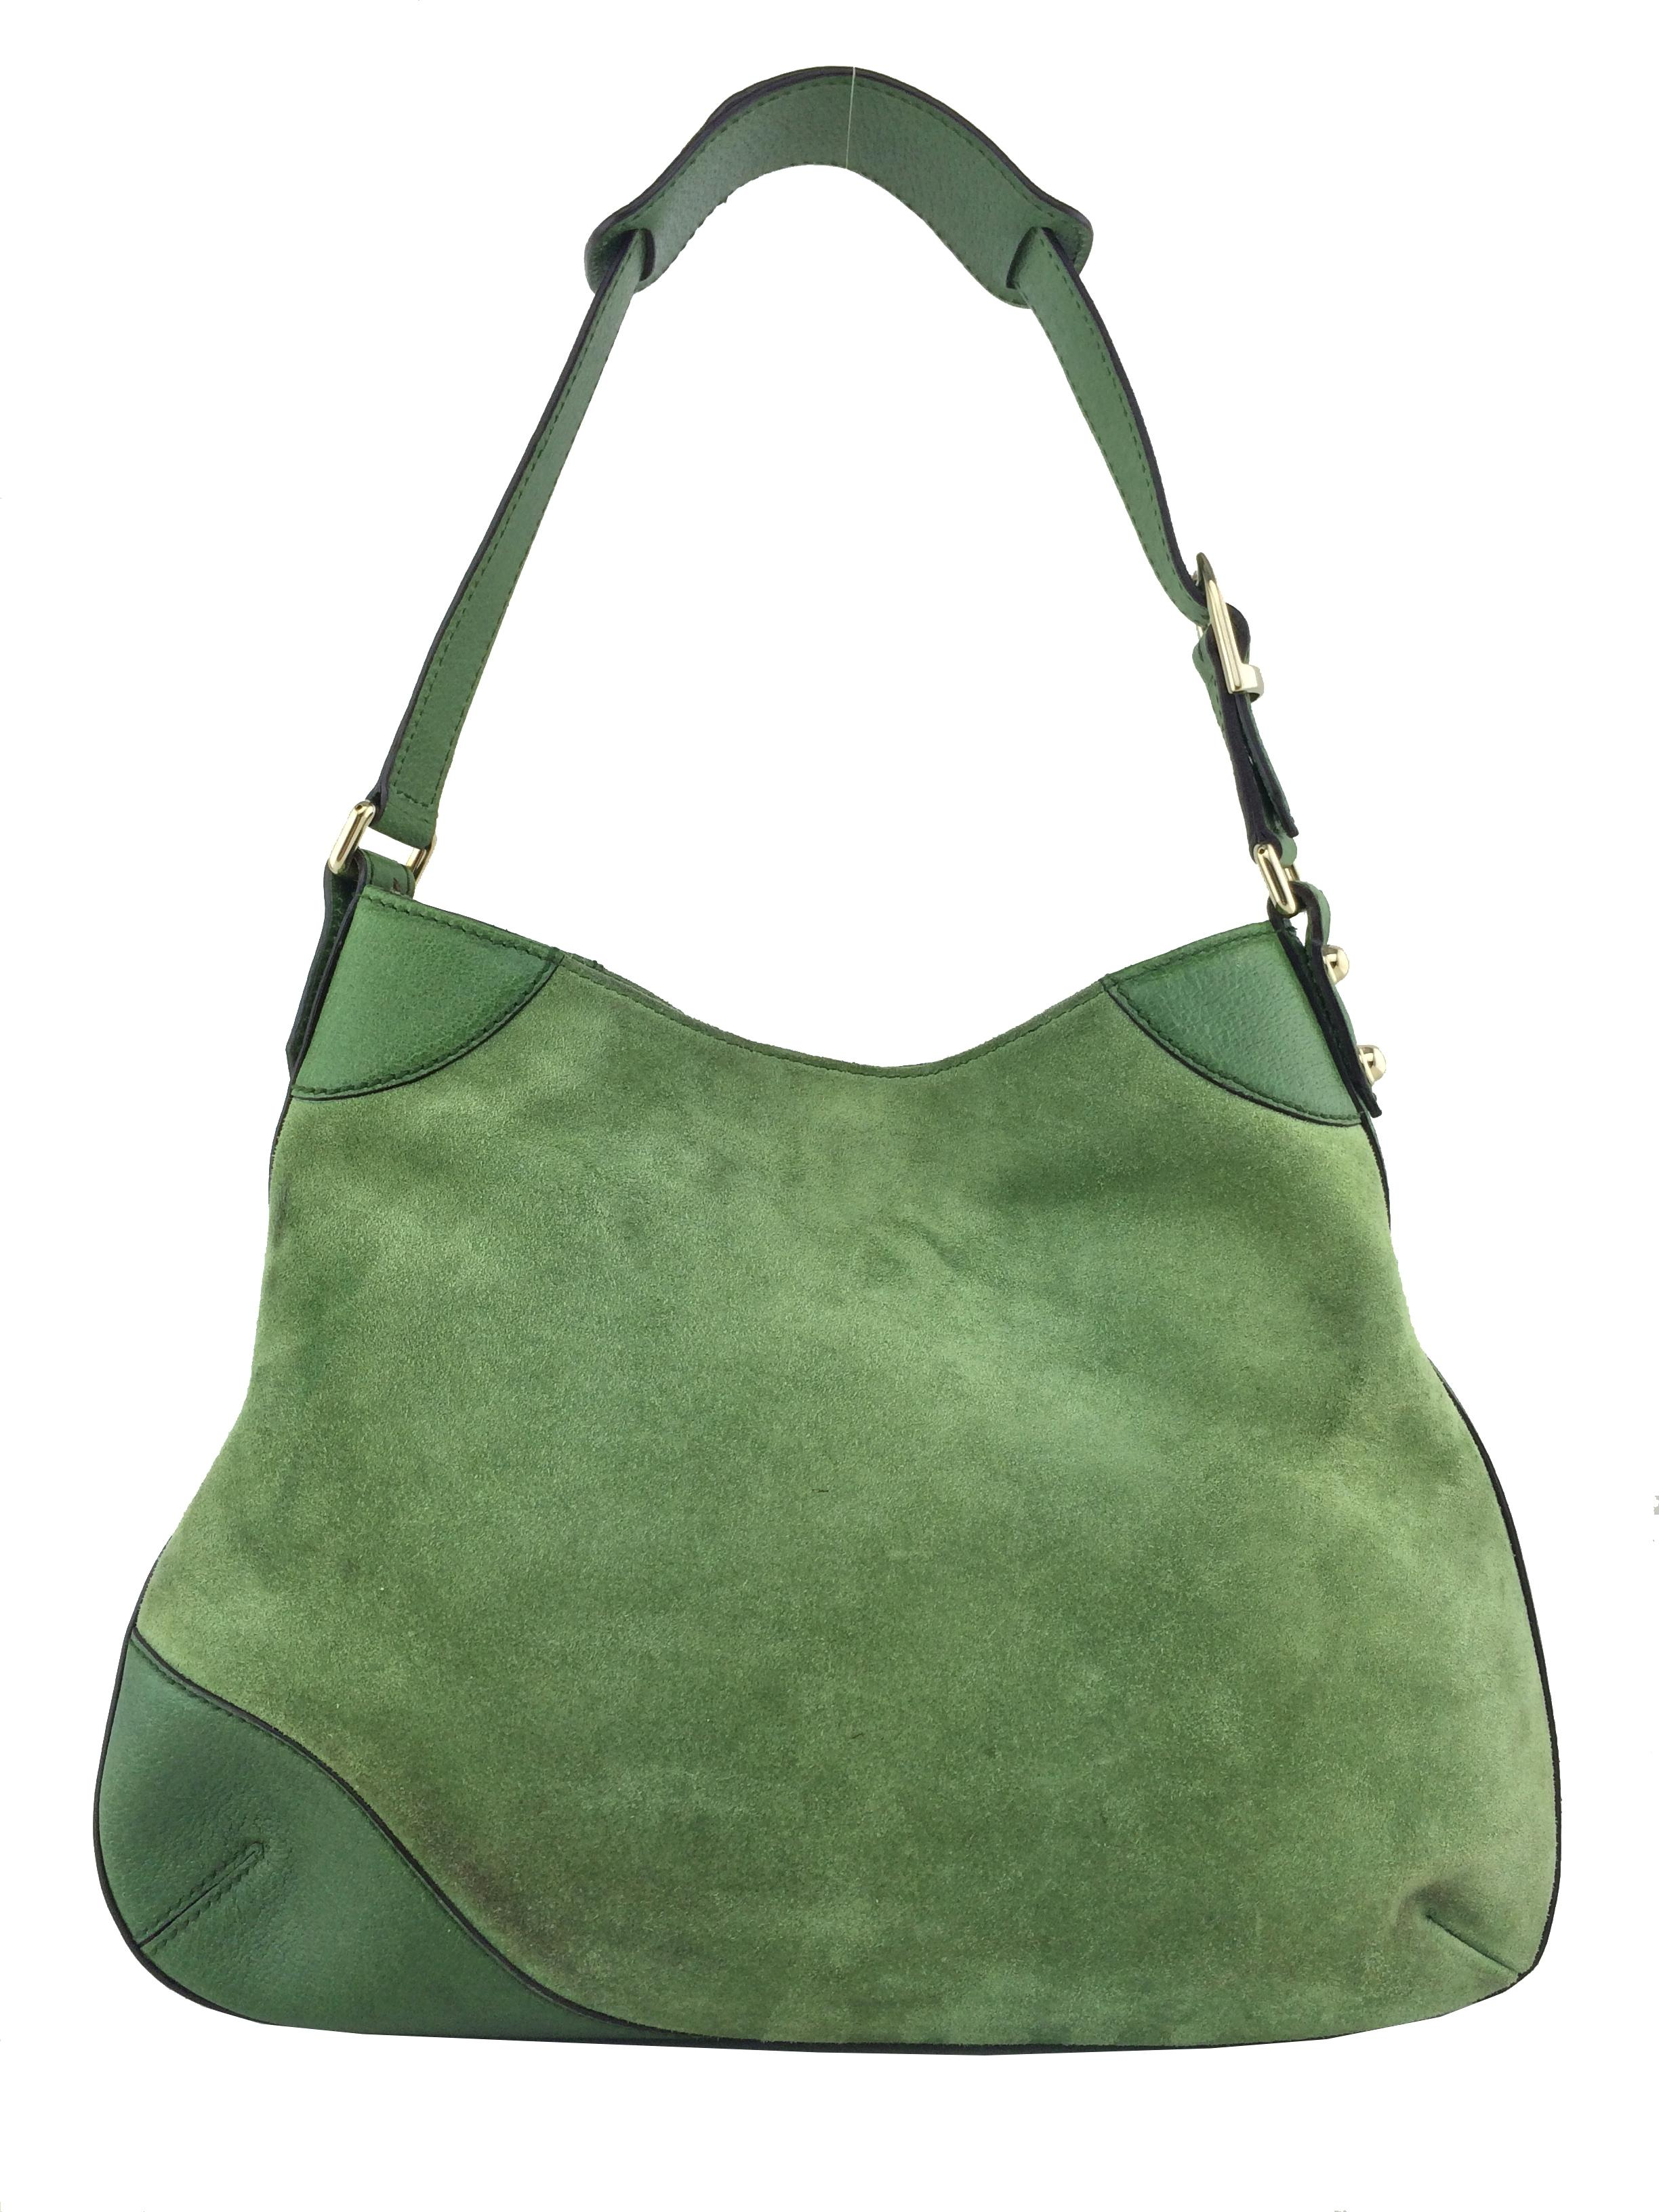 Gucci Green Suede Hobo With Gold Hardware r7FhbVX